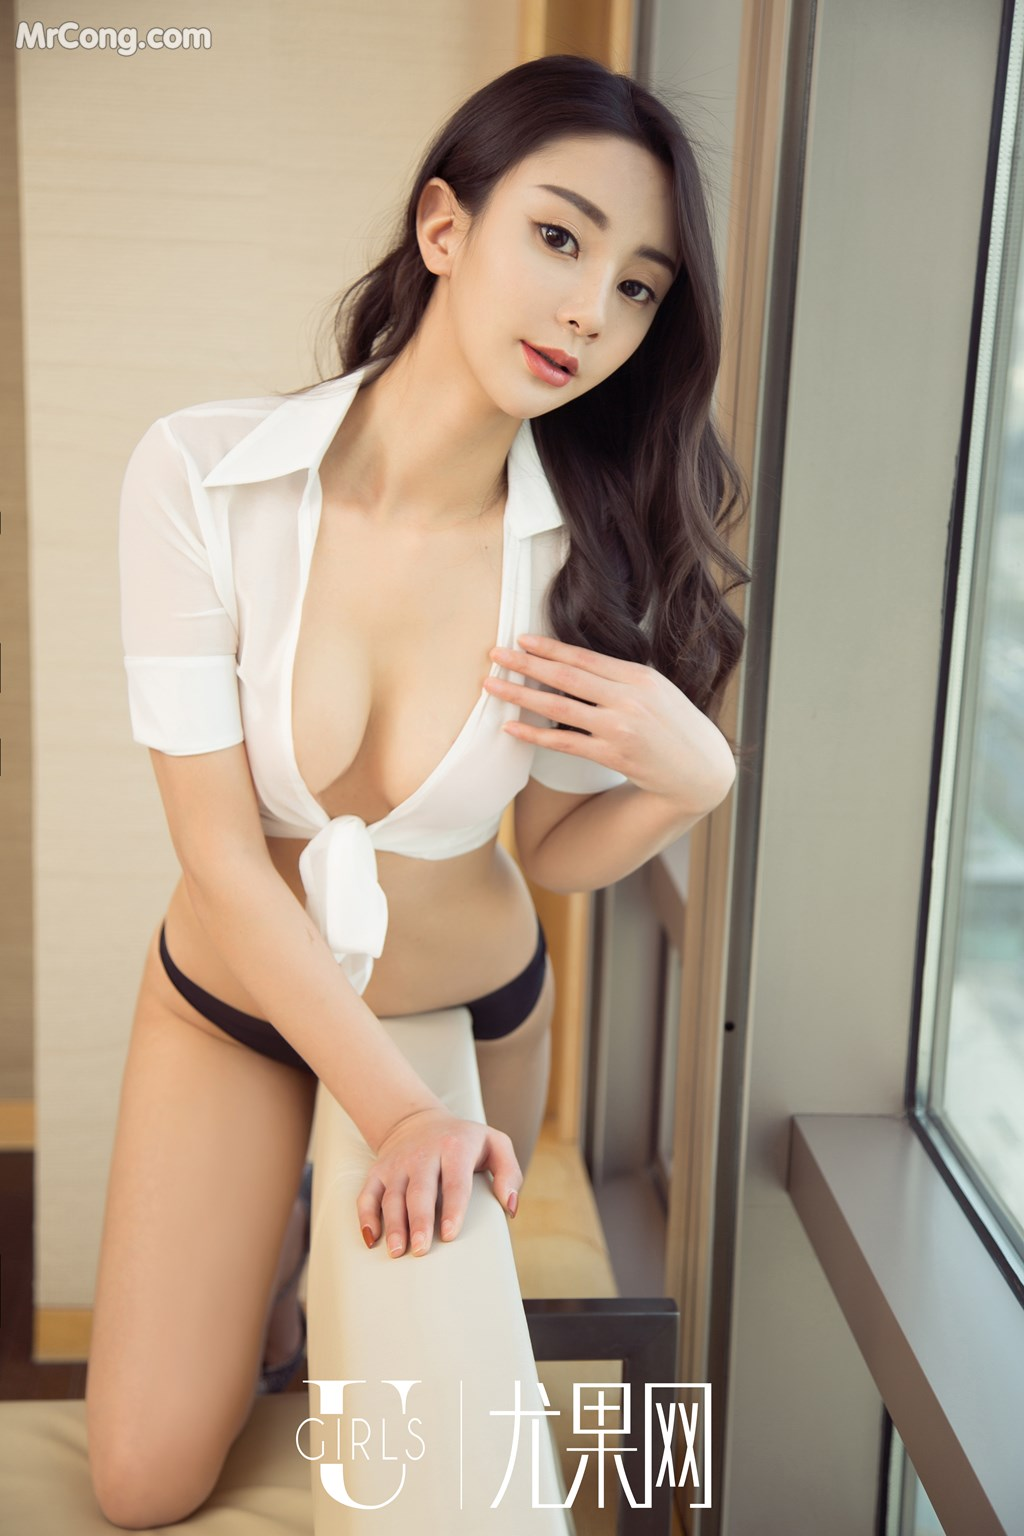 Lucy Chinese model sexy nude photoshoot